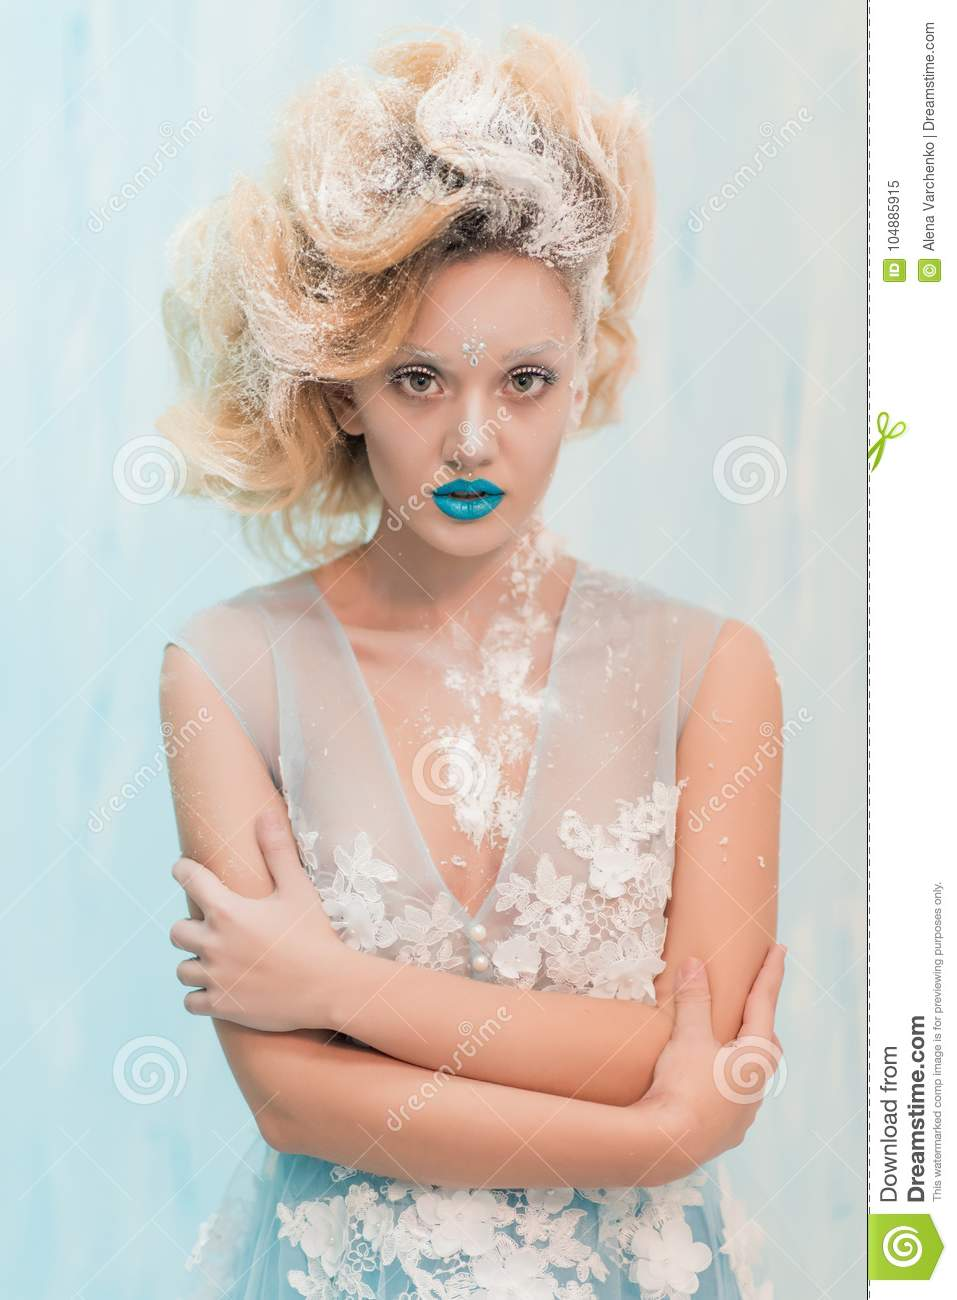 Beautiful Ice Queen With Blue Lips And Hairstyle With Snow In Hair